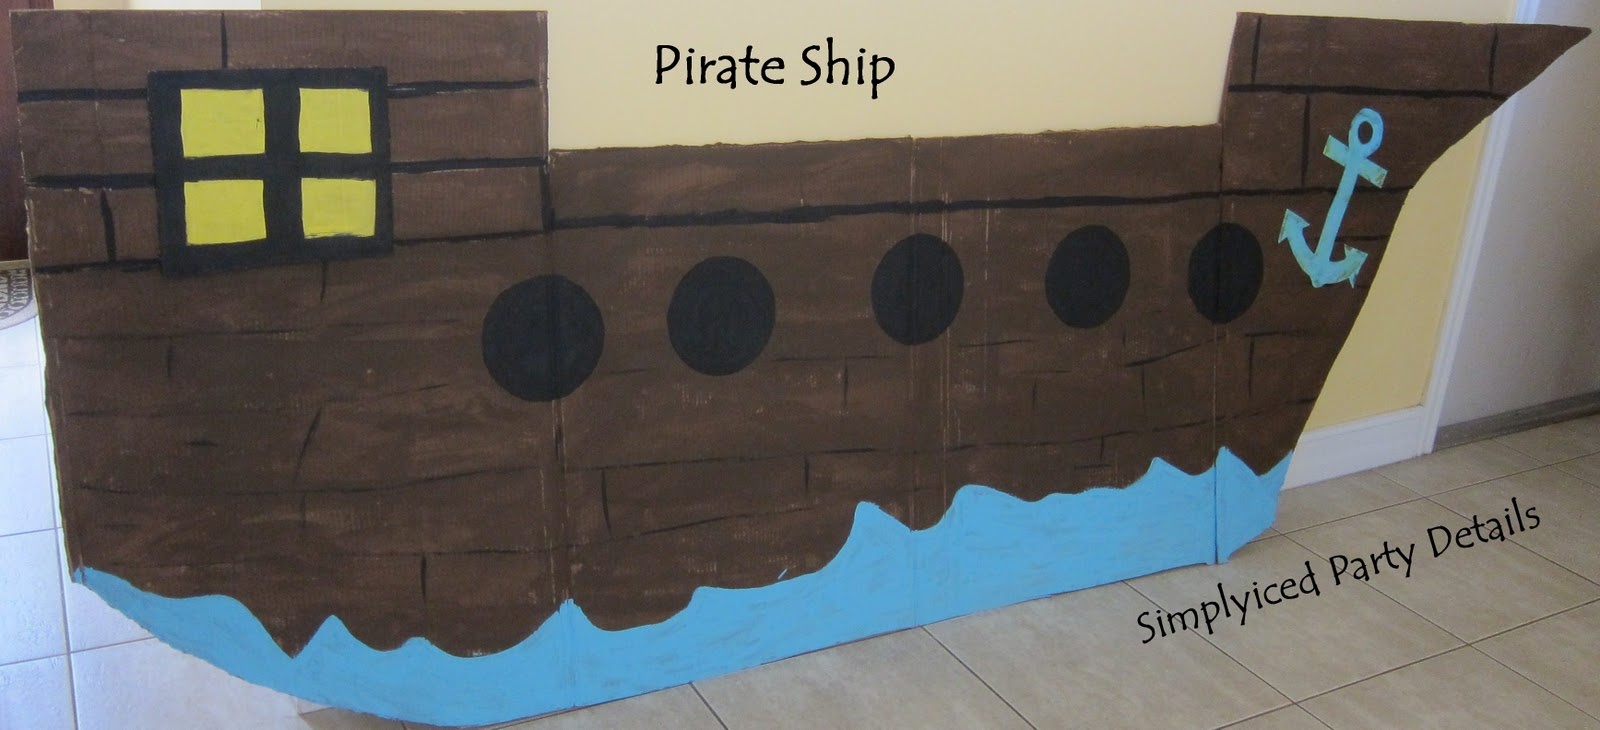 Simplyiced party details pirate party preparations for Cardboard pirate ship template